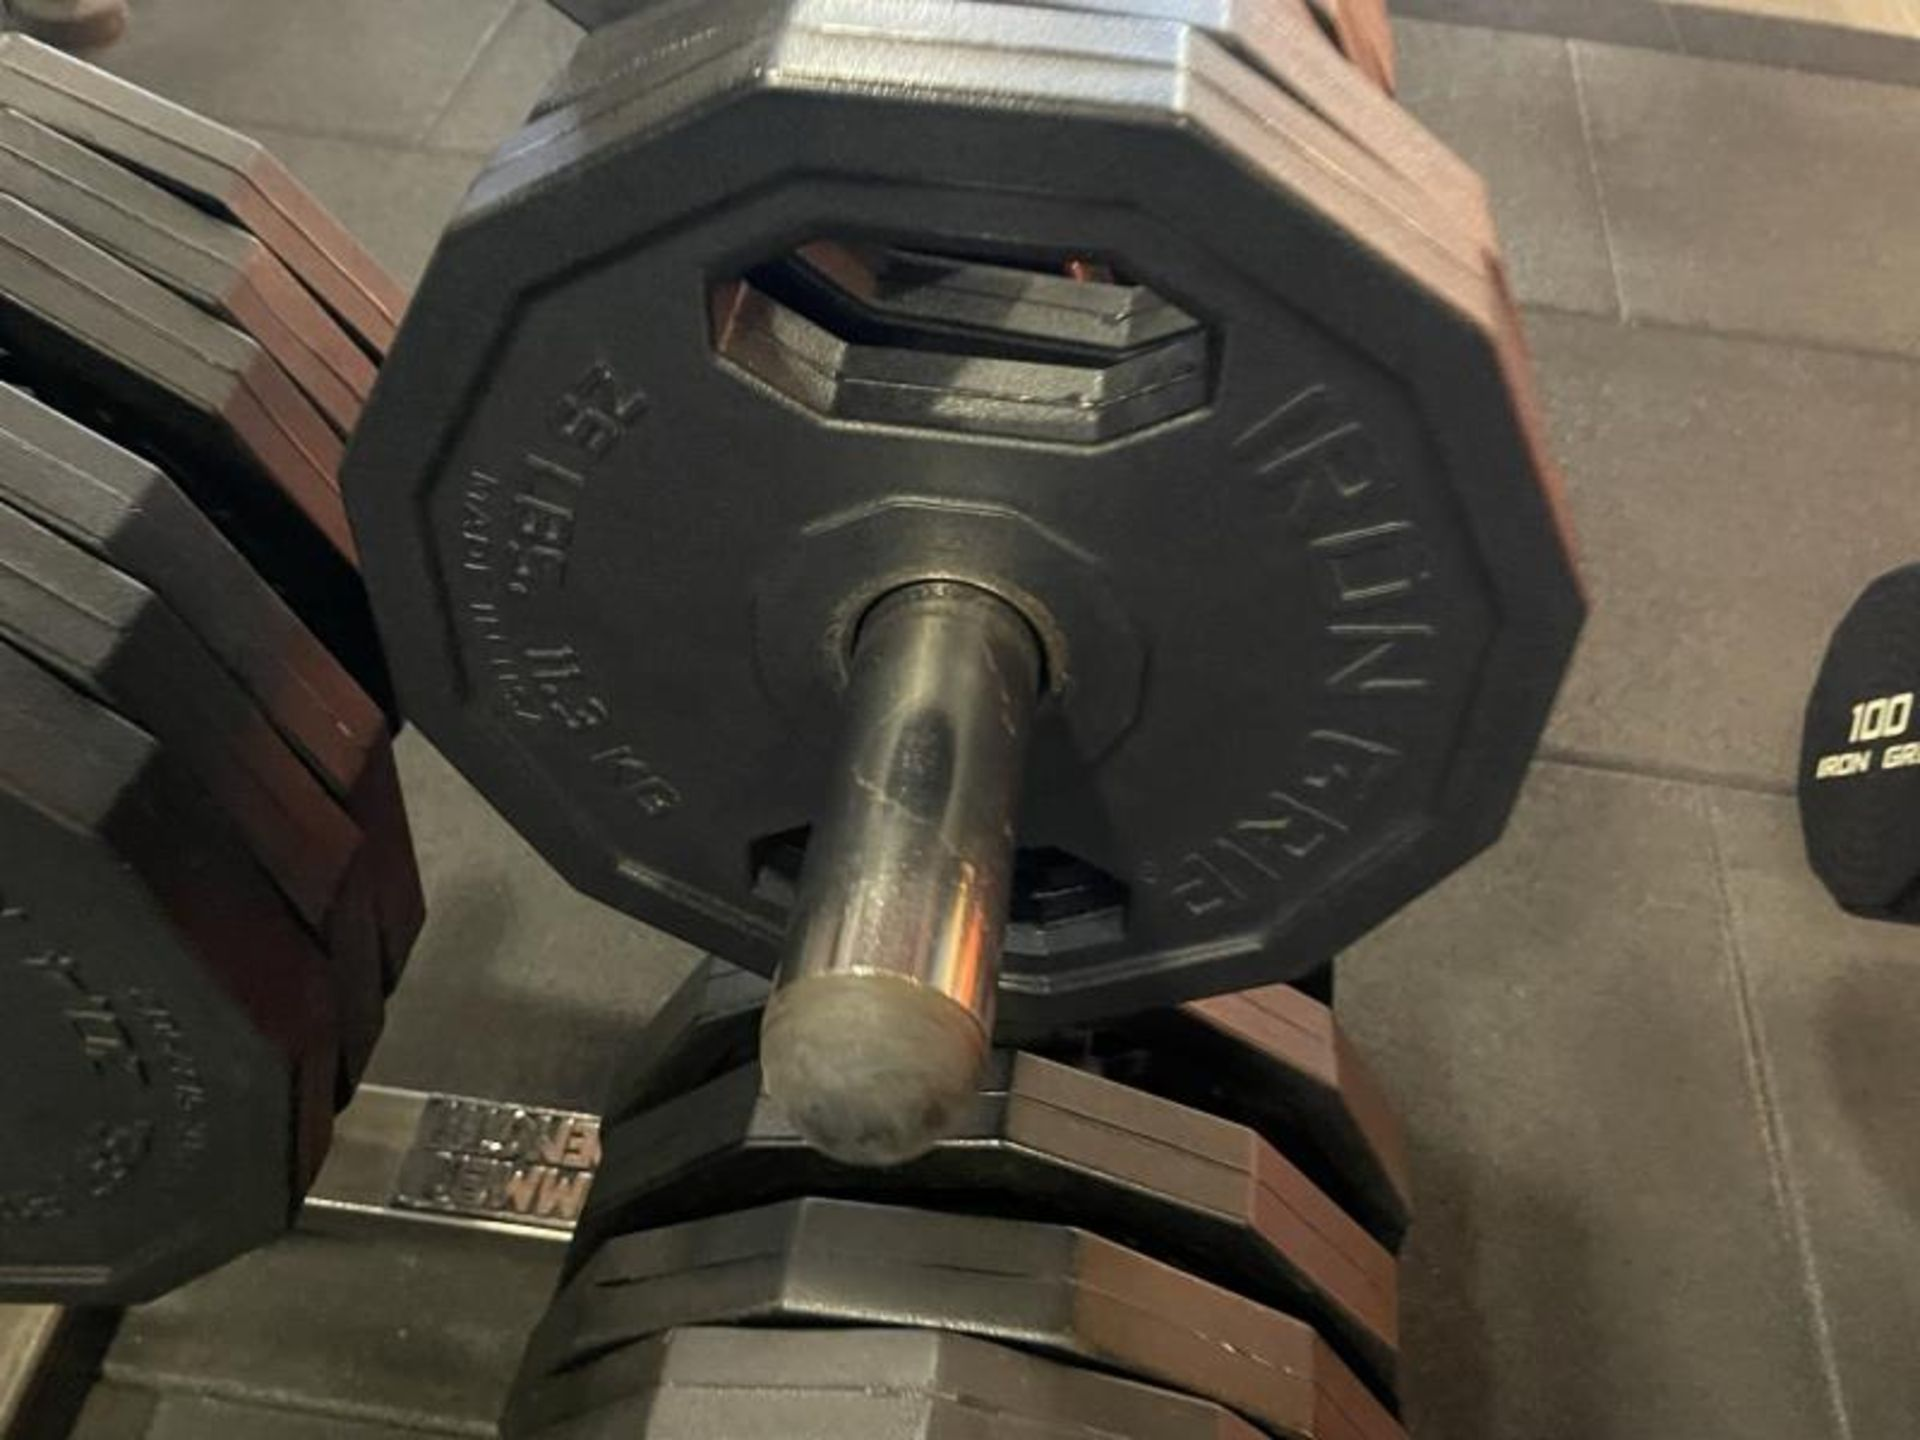 Hammer Strength Rack with 26 Iron Grip Weighted Plates - Image 2 of 5